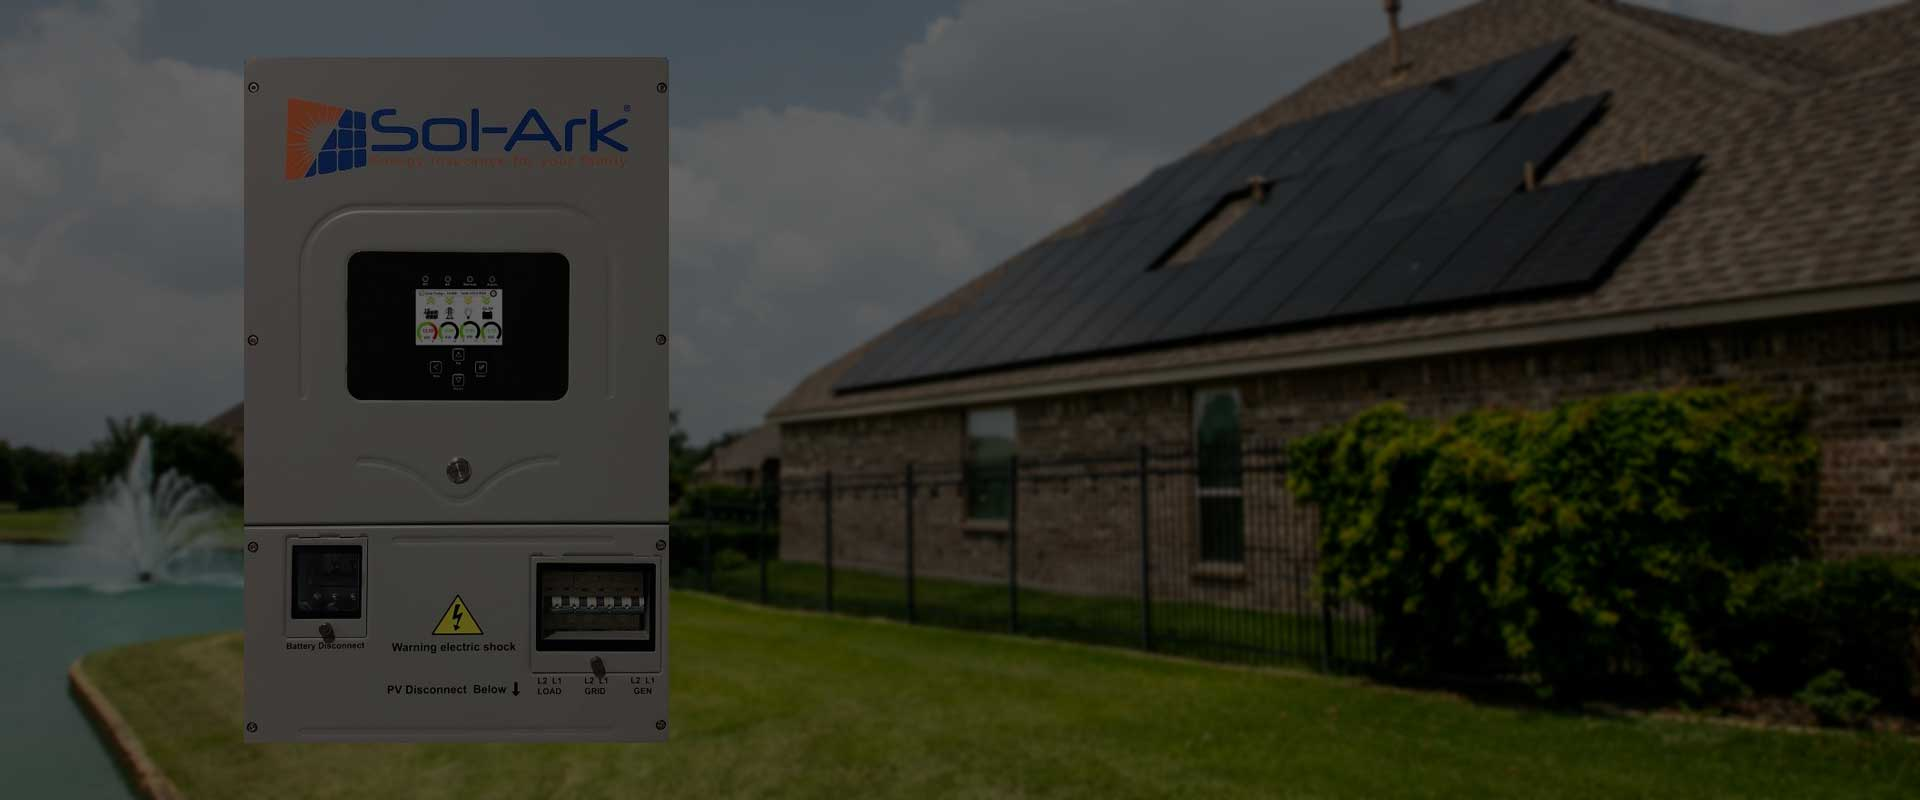 Sol-Ark for your home battery backup needs